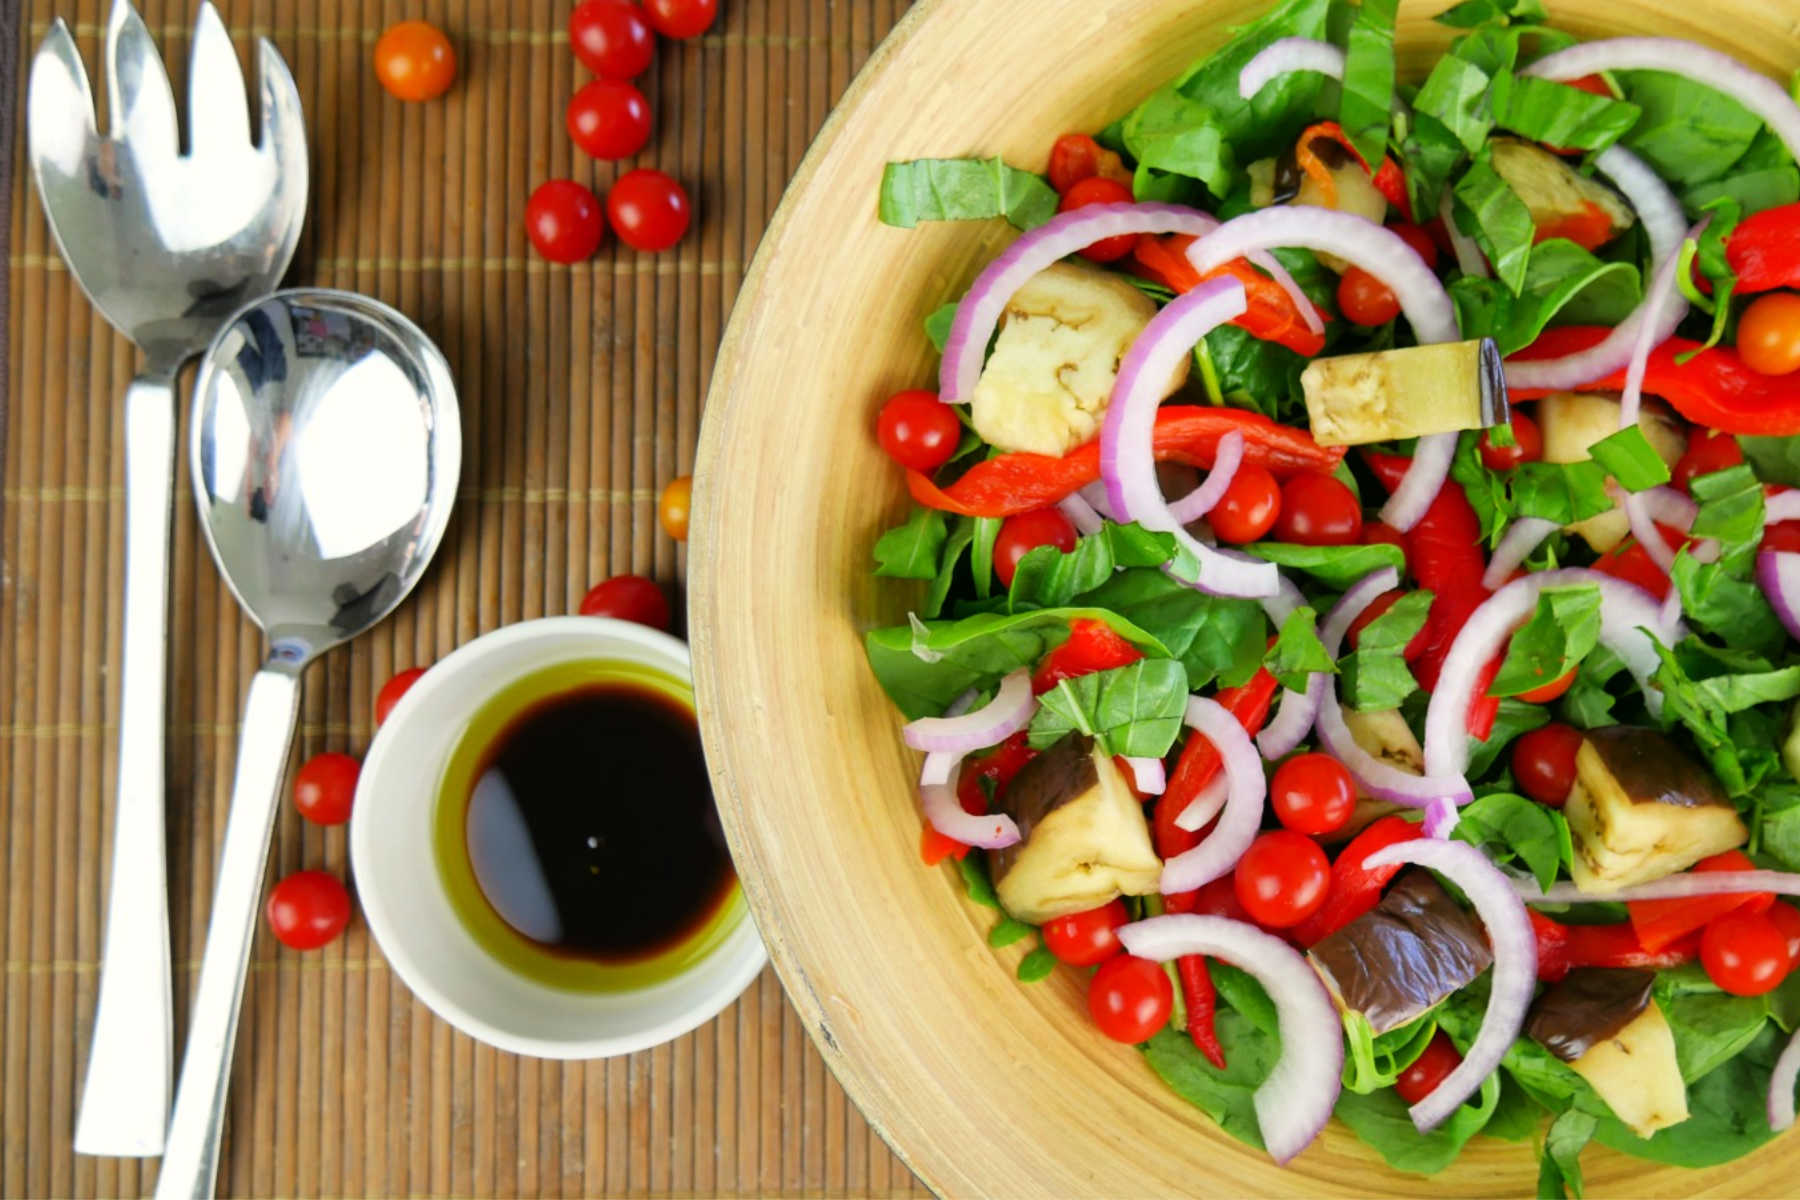 Roasted-capsicum-eggplant-onion-salad